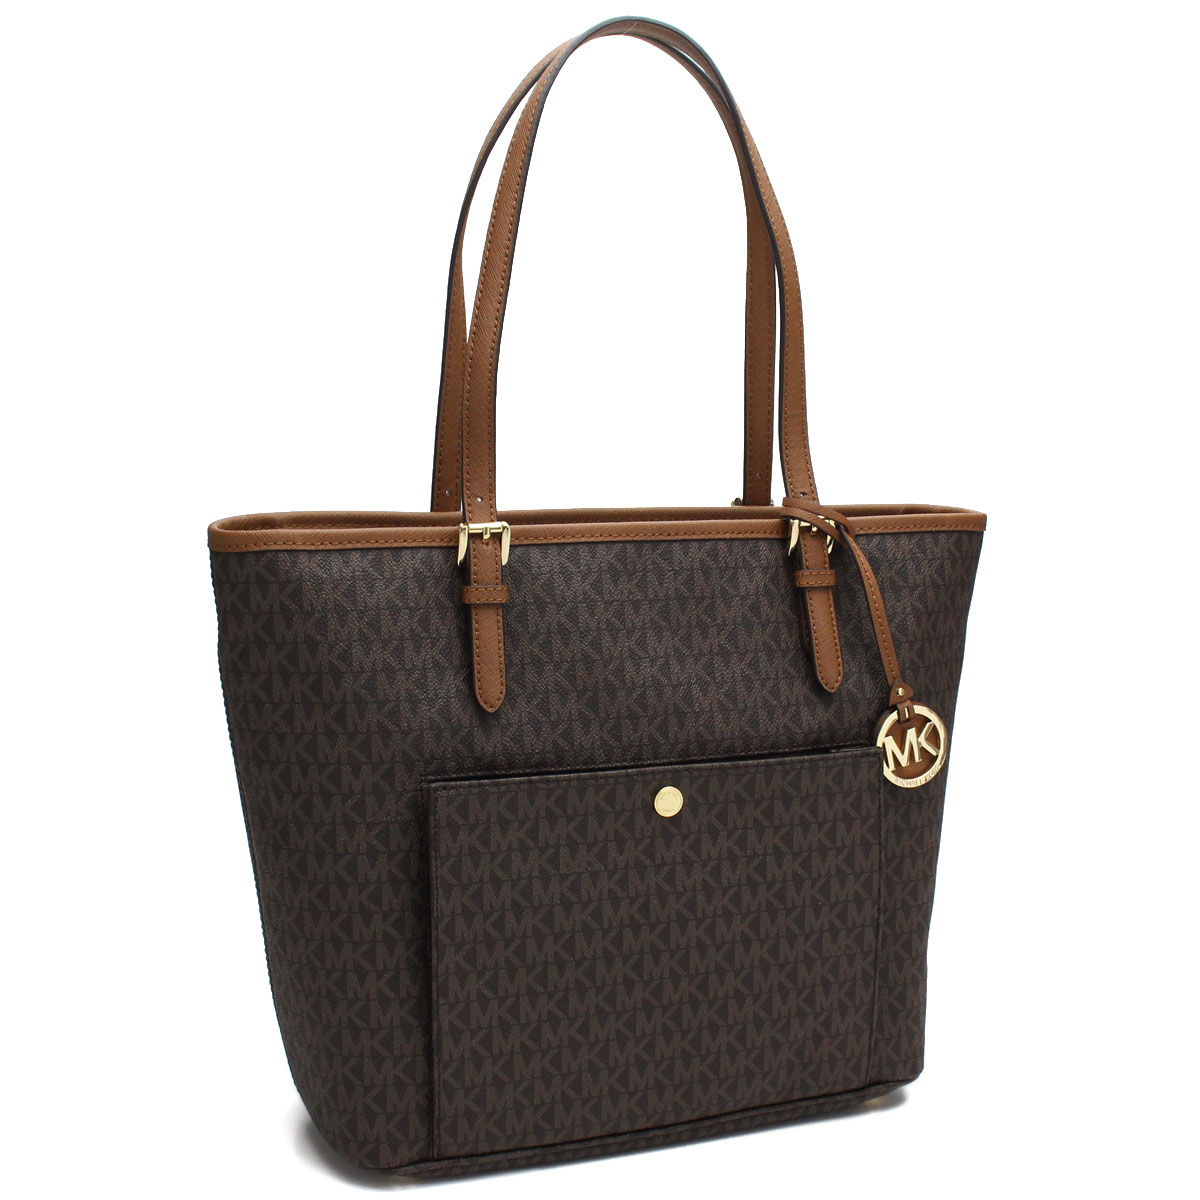 528aca960014 Bighit The total brand wholesale: Michael Kors (MICHAEL KORS) JET SET jet  set MK signature tote bag 30S7GTTT7B BROWN brown system | Rakuten Global  Market